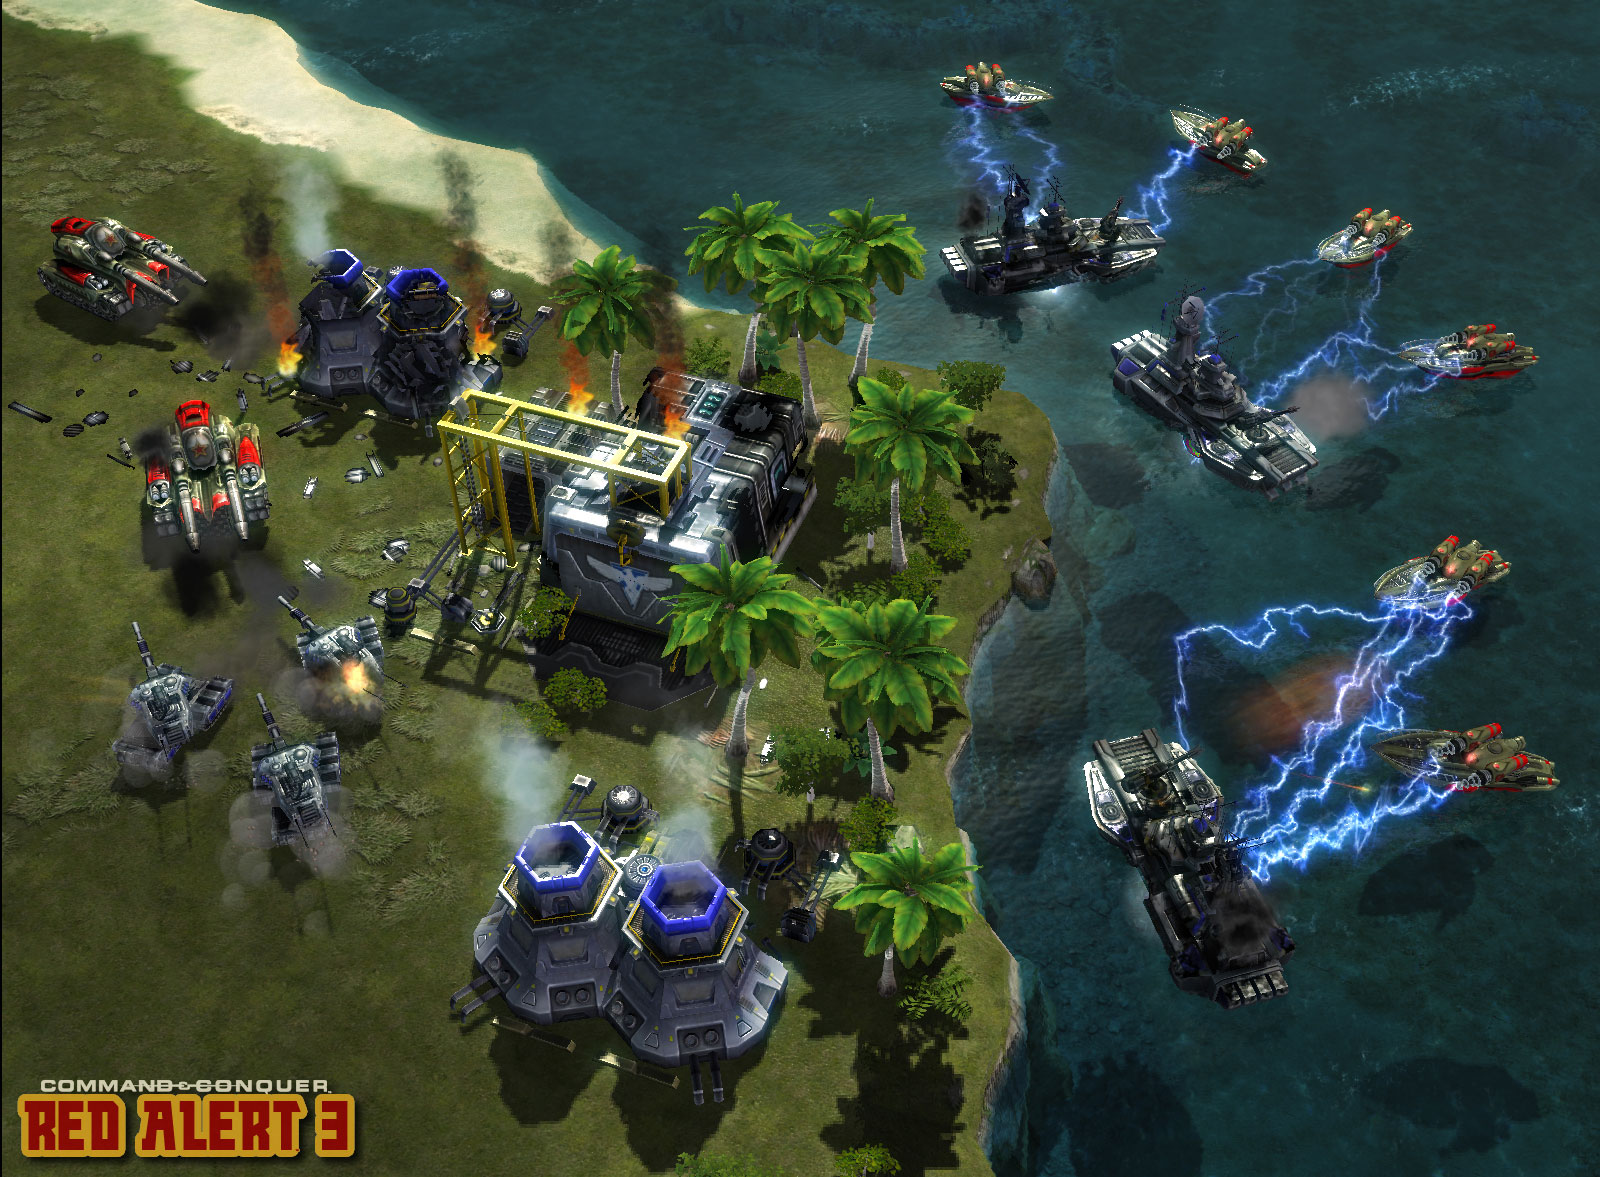 تحميل لعبة Red Alert 3 كاملة! Download Red Alert 3 Full ! بروابط صاروخيه red-alert-3-land-units-screenshot-big.jpg